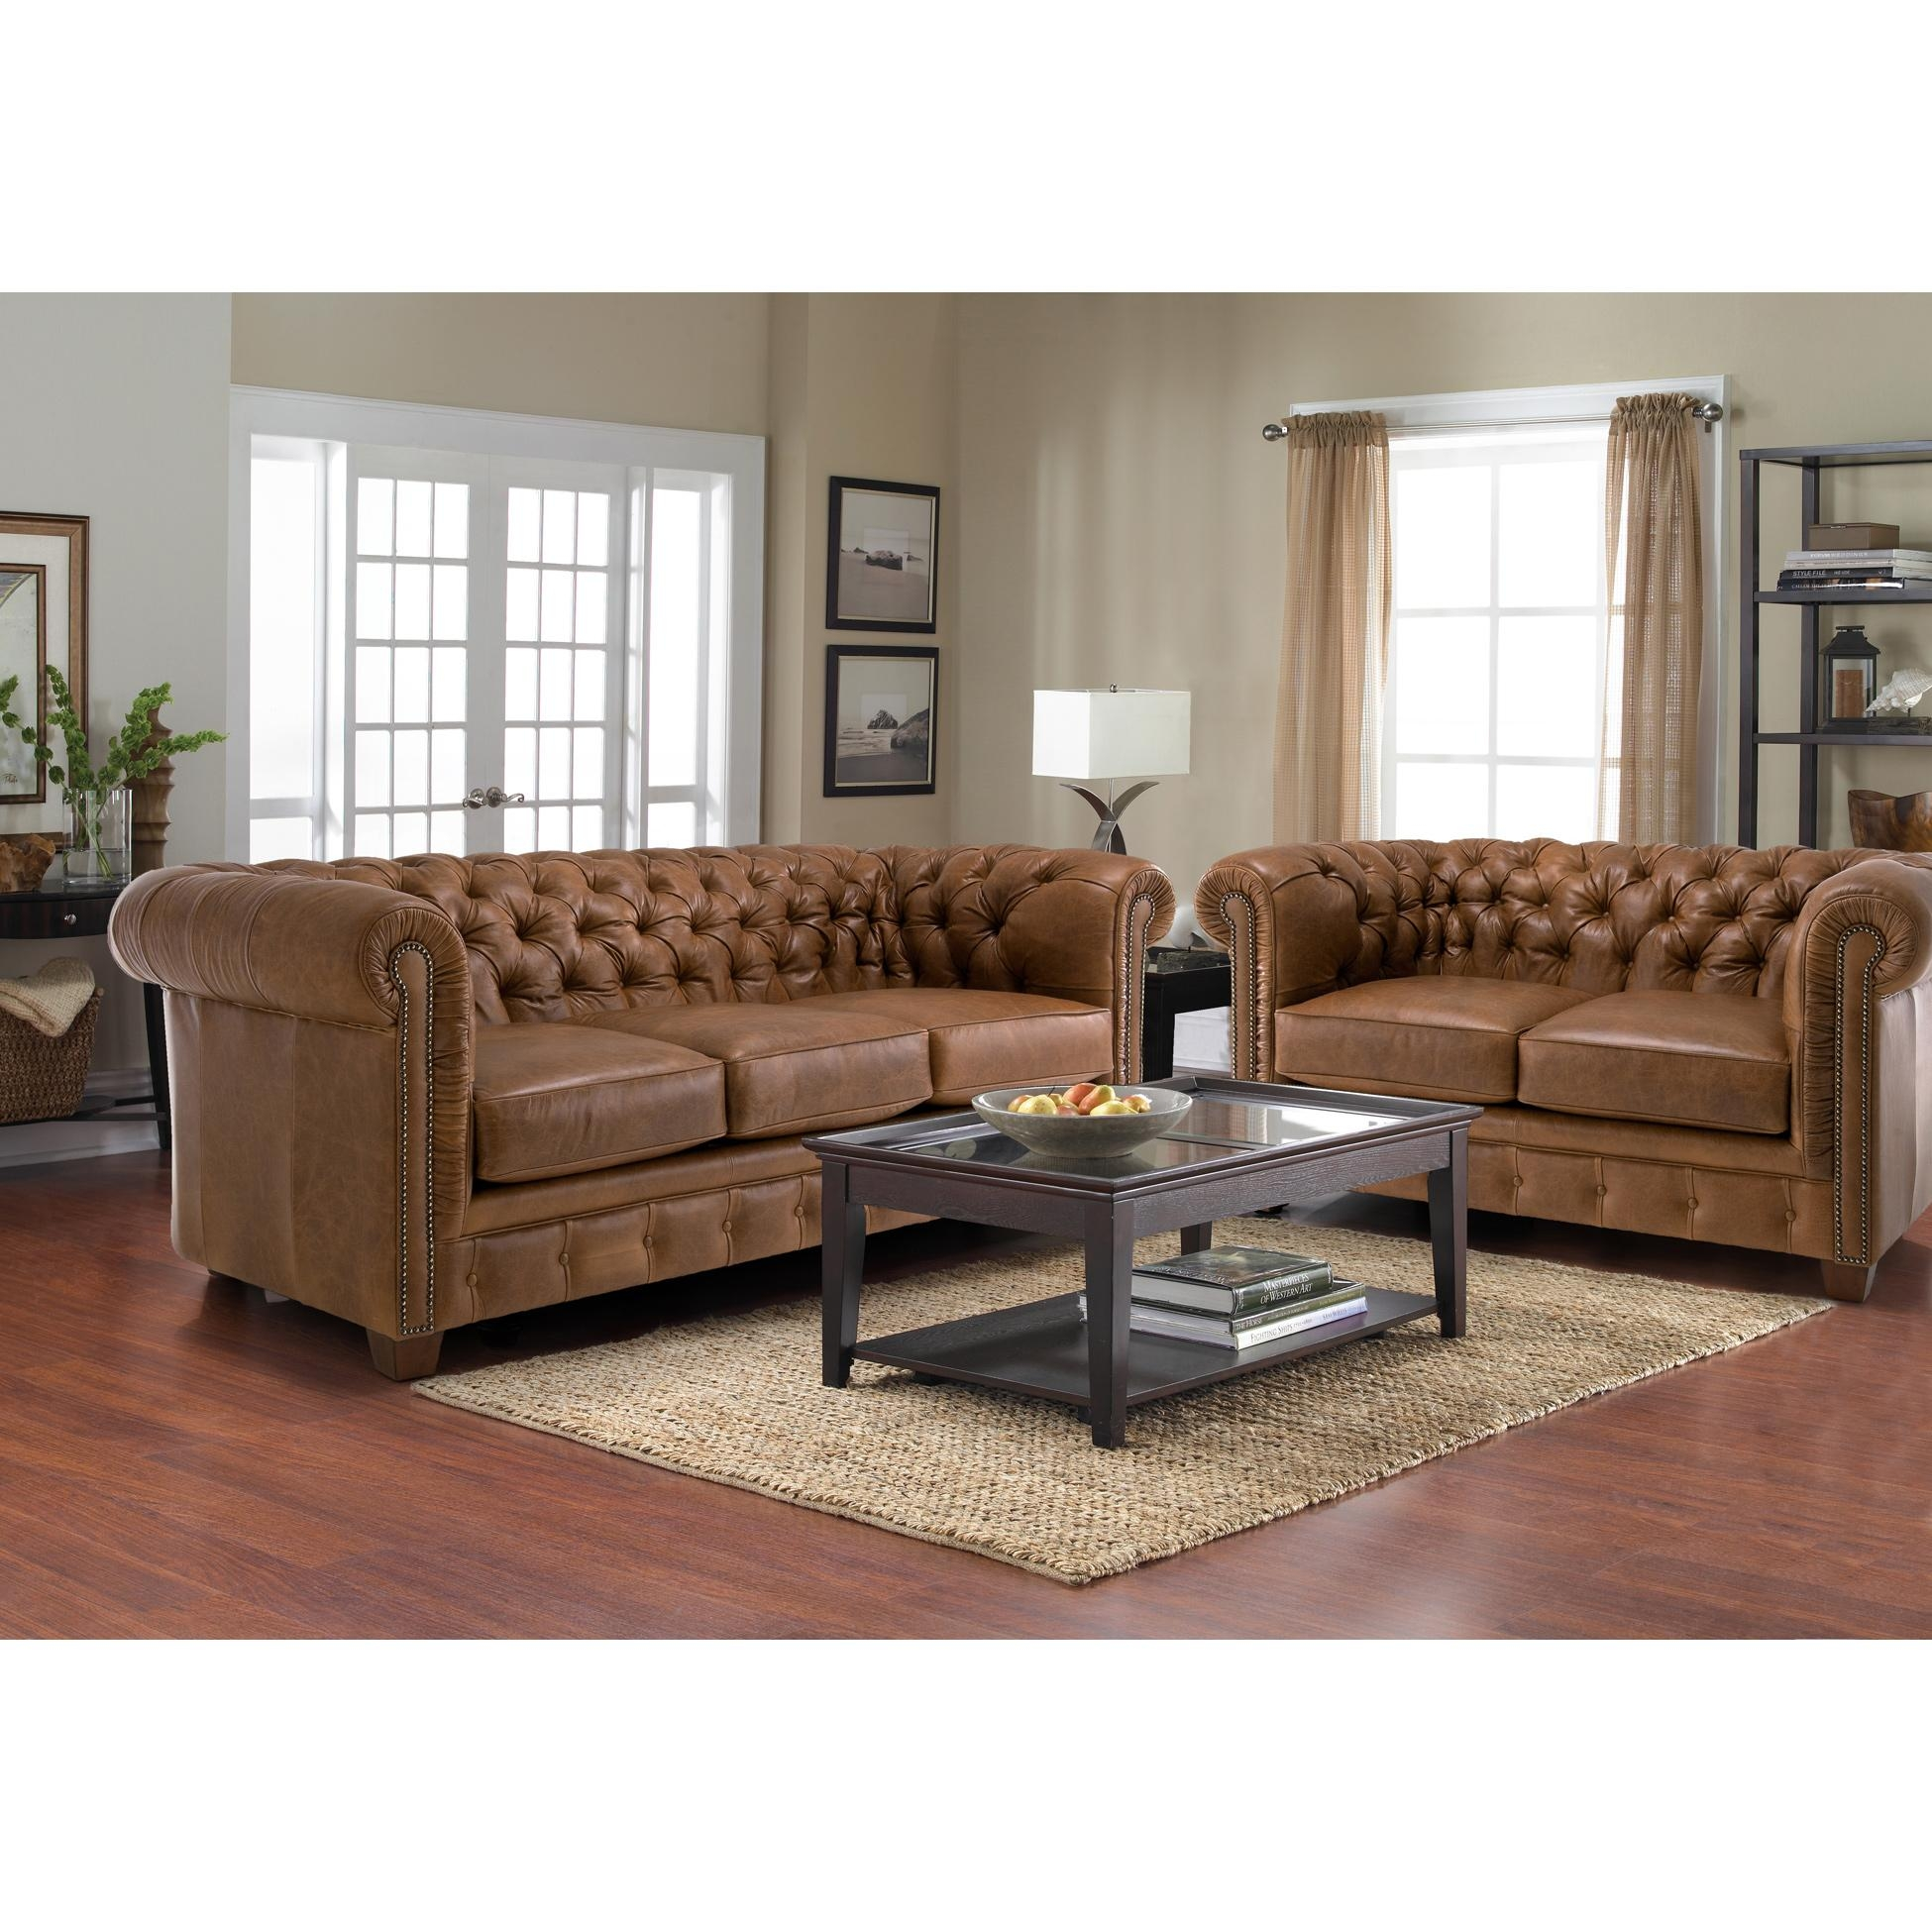 Furniture: Enchanting Chesterfield Couch For Living Room Furniture Within Brown Tufted Sofas (Image 10 of 20)